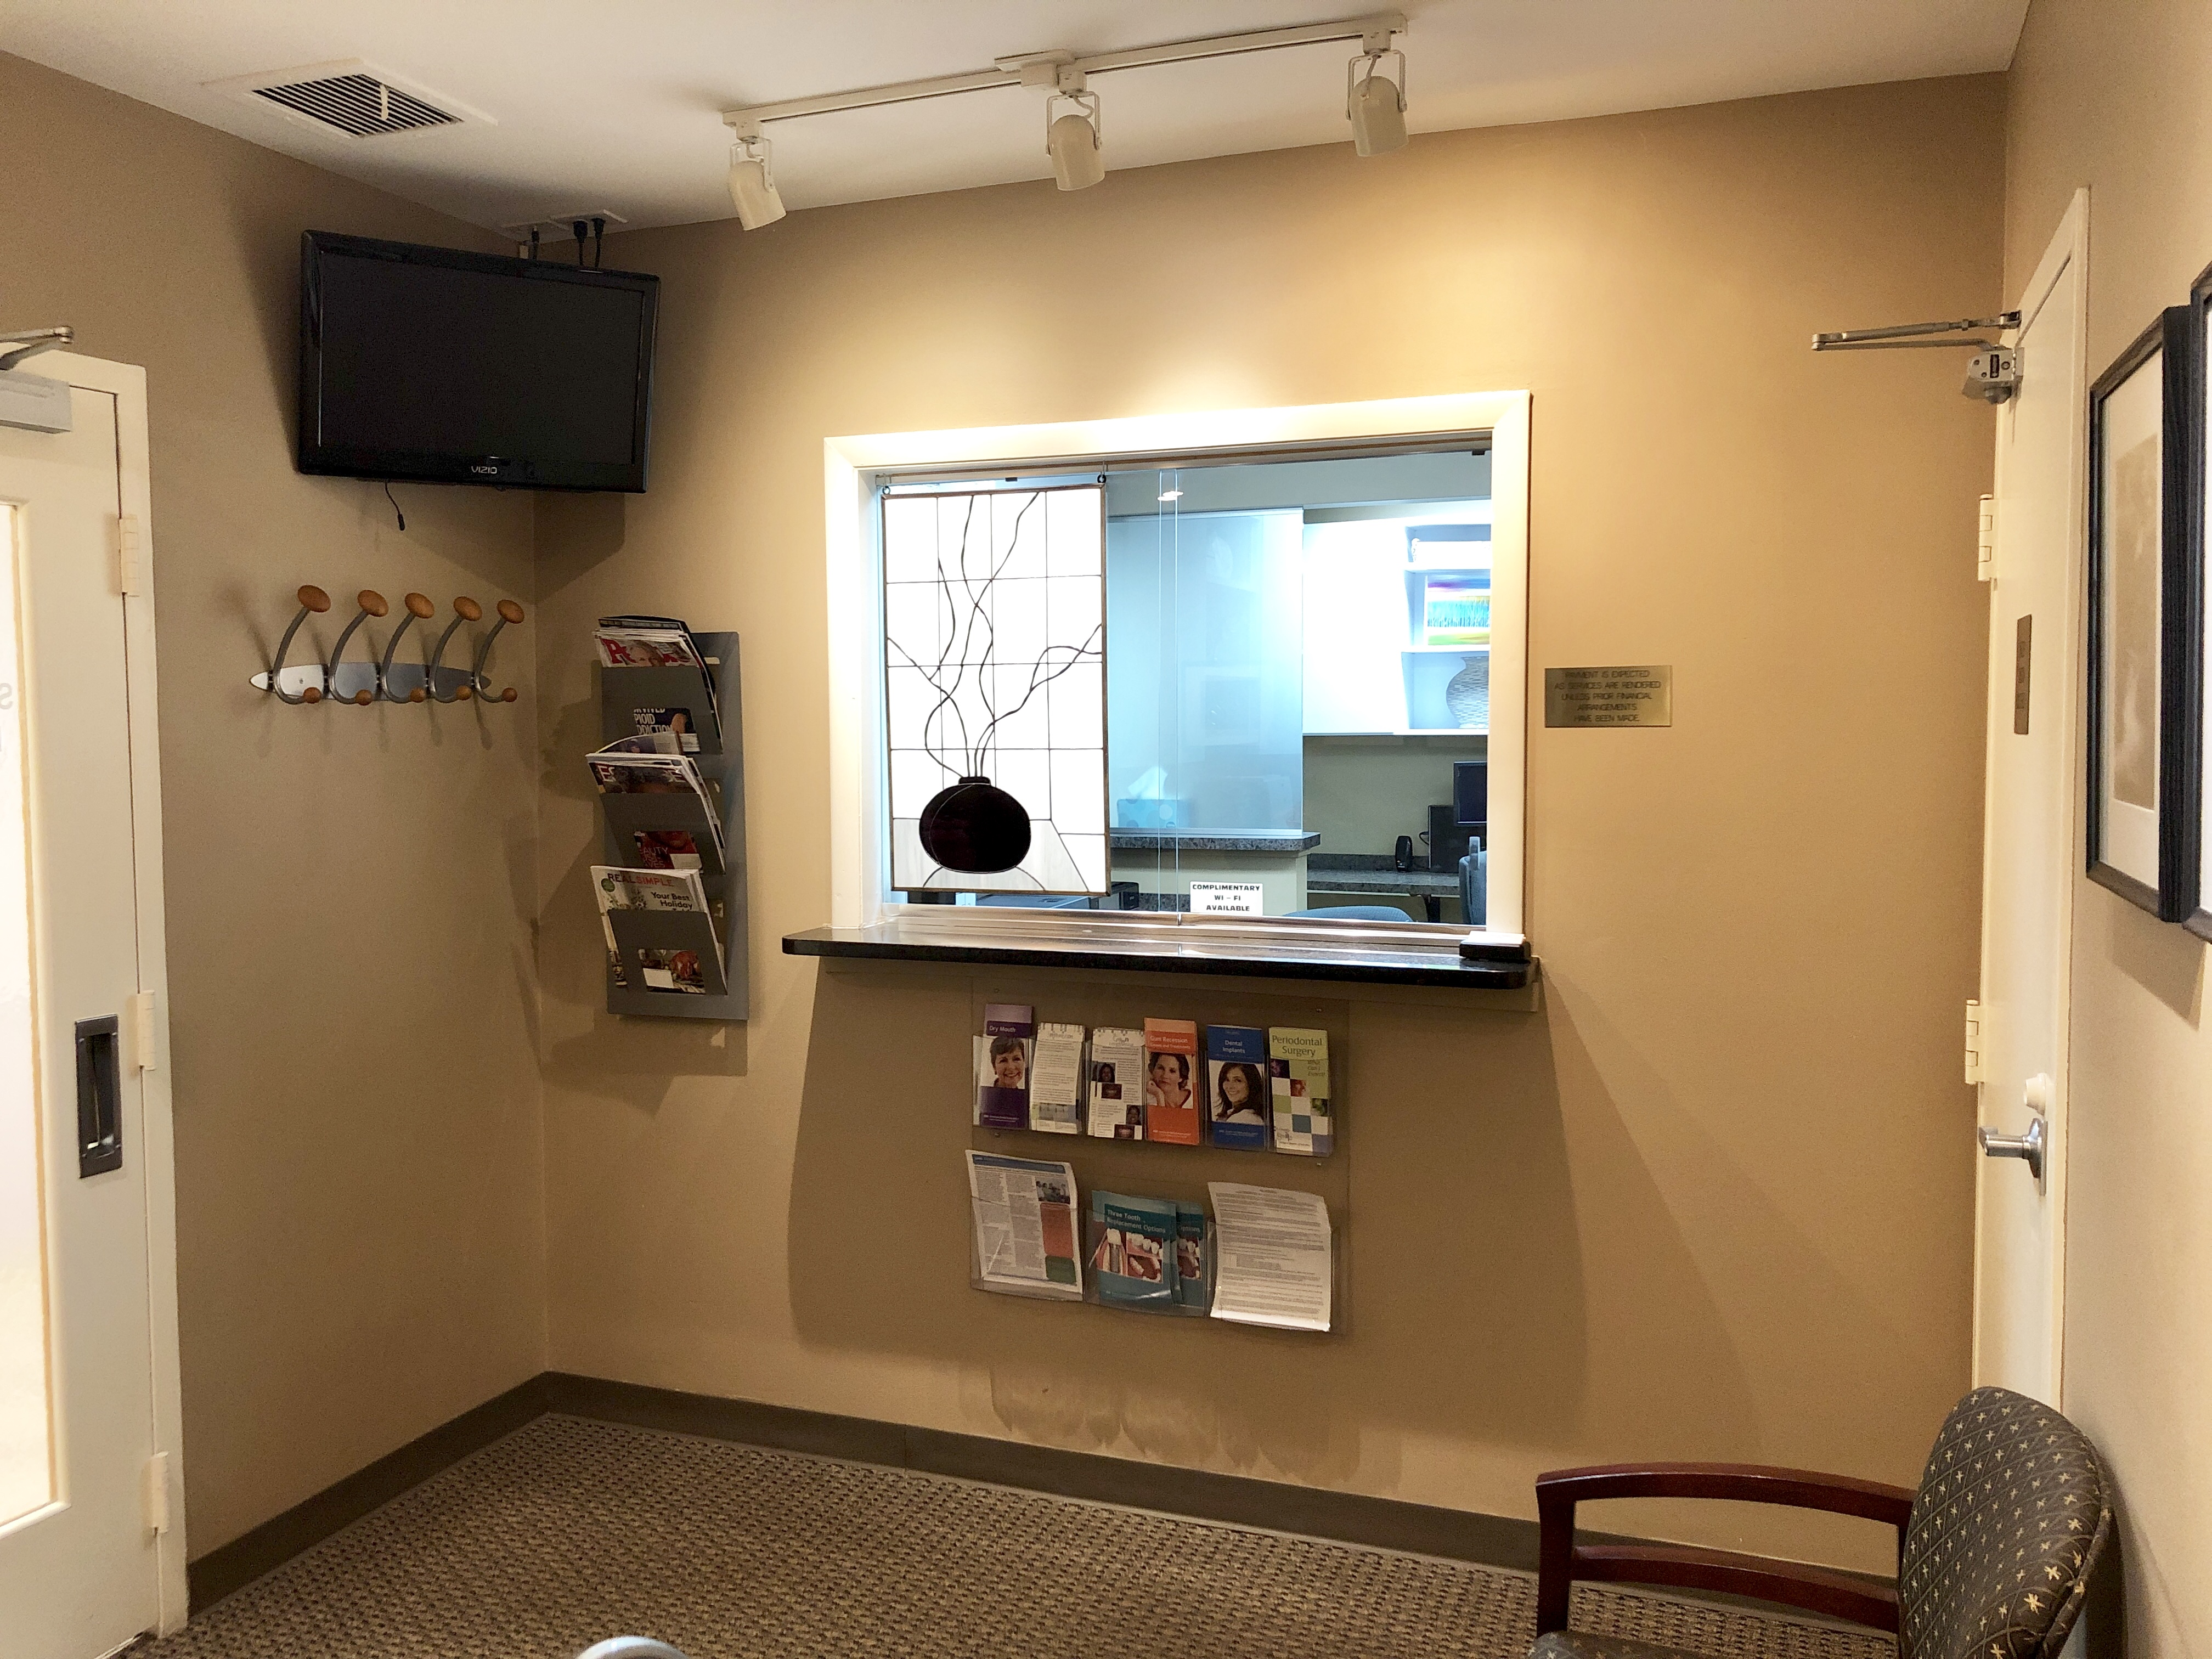 Implant Dentist in Naperville IL